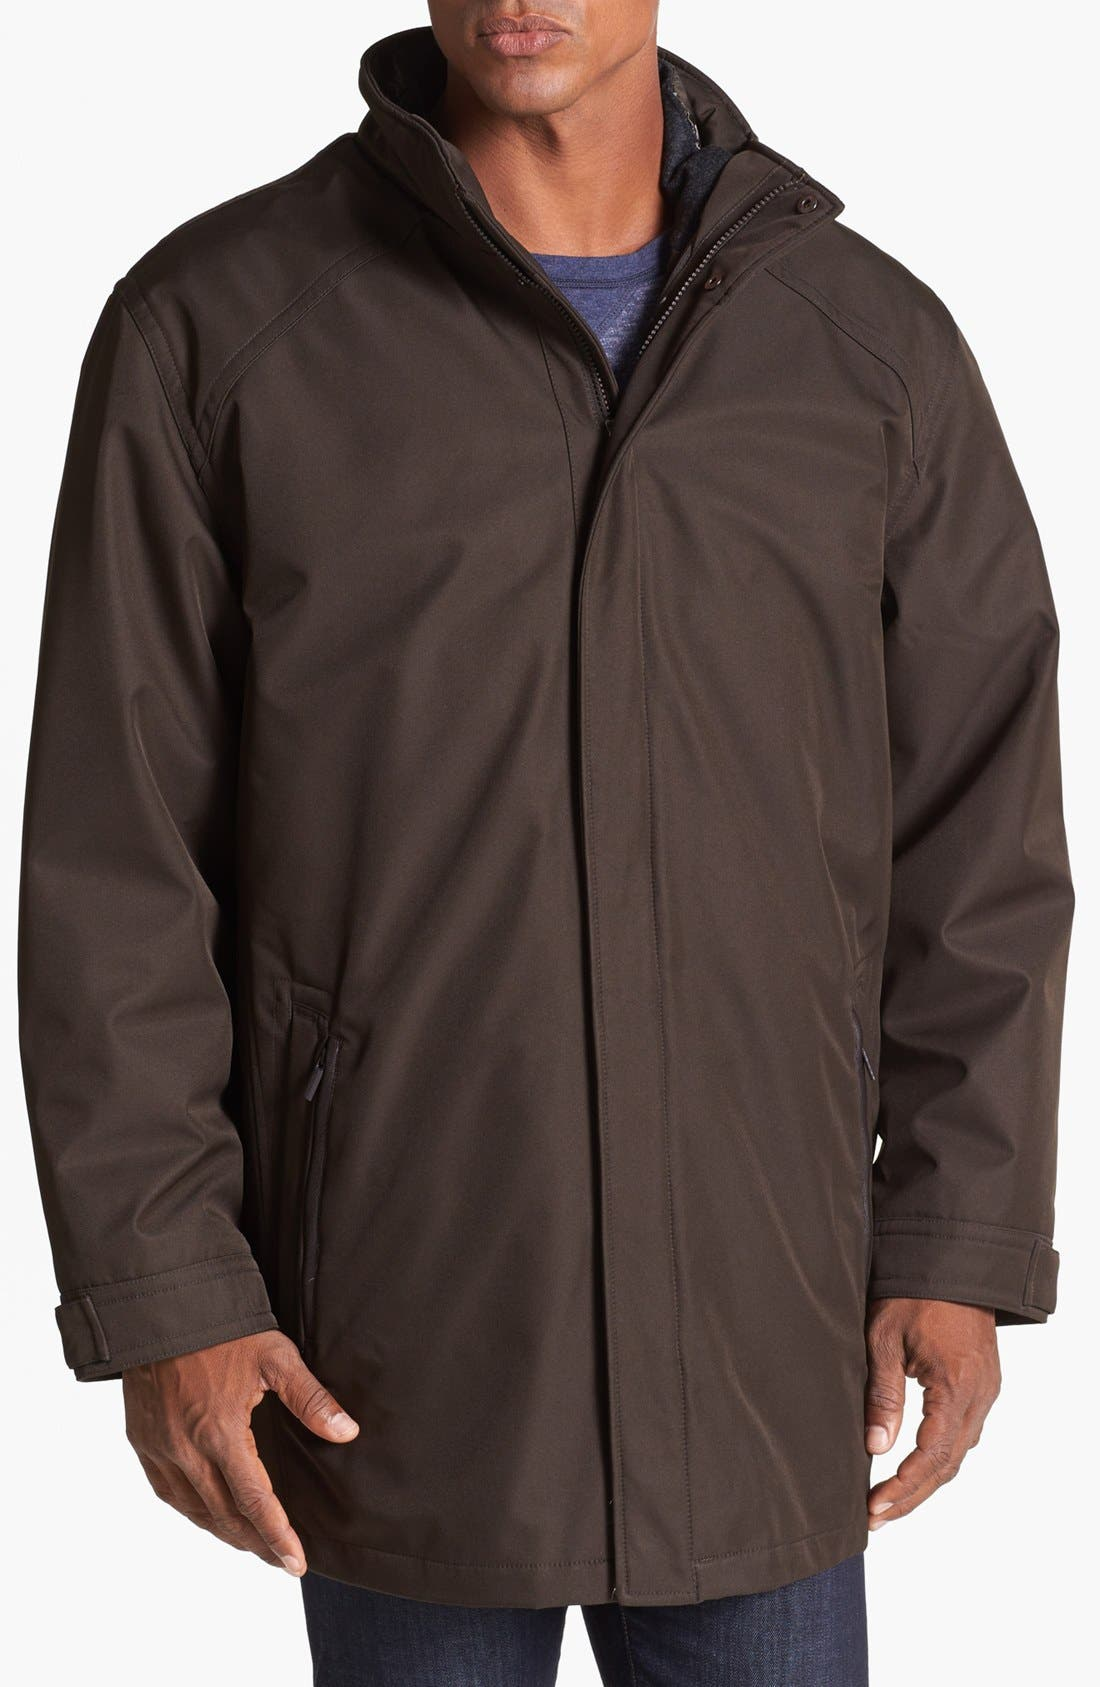 Alternate Image 1 Selected - RAINFOREST 3-in-1 Micro Twill Jacket